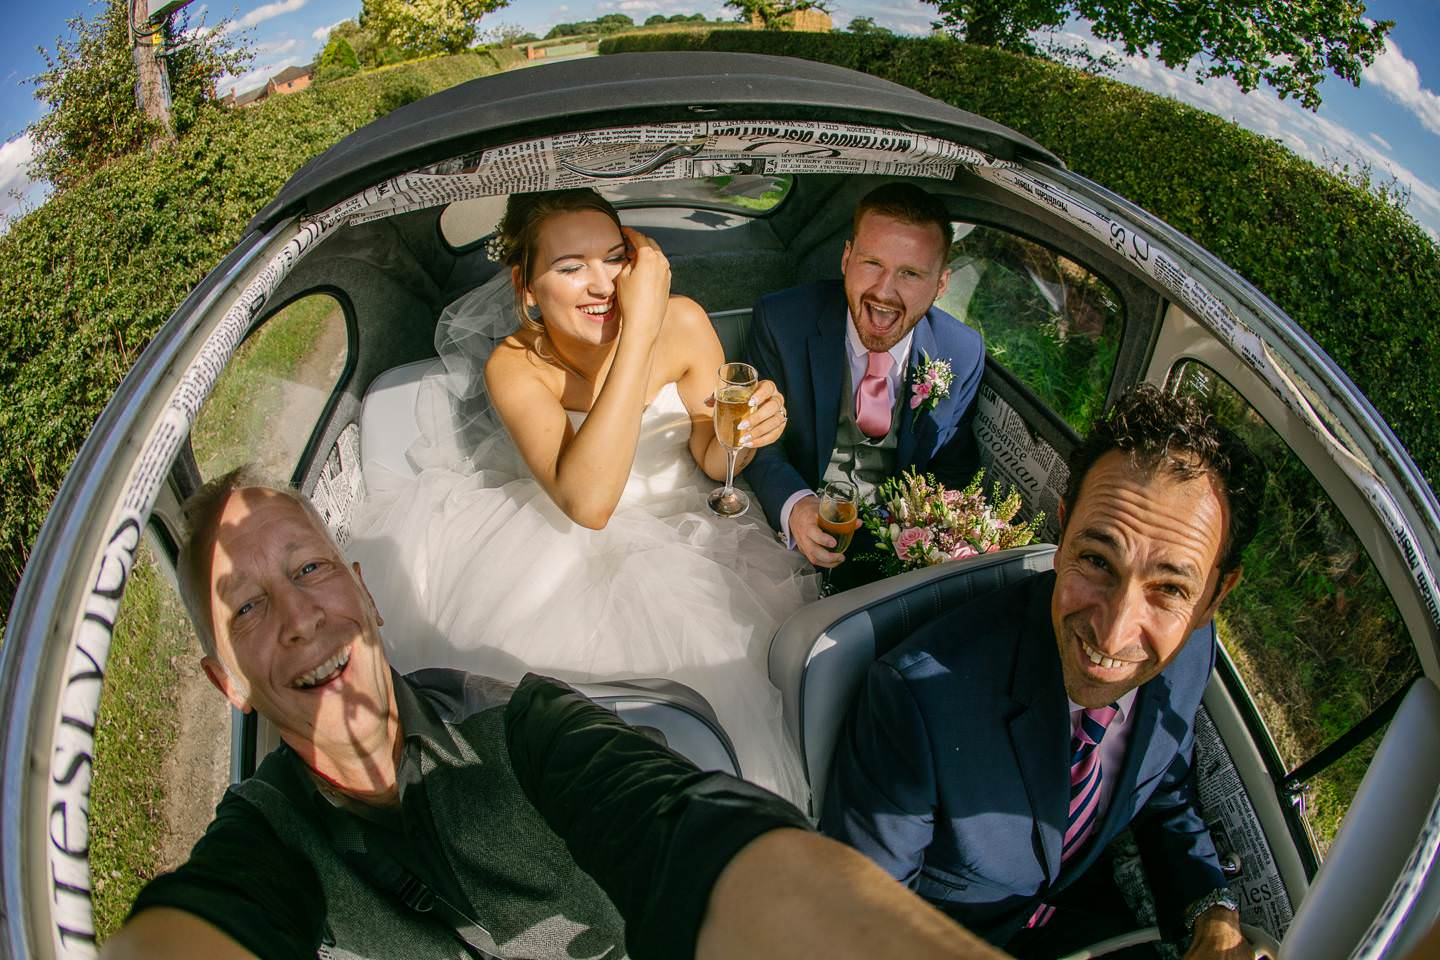 shropshire wedding photographer phil barrett with bride and groom aboard Herbie